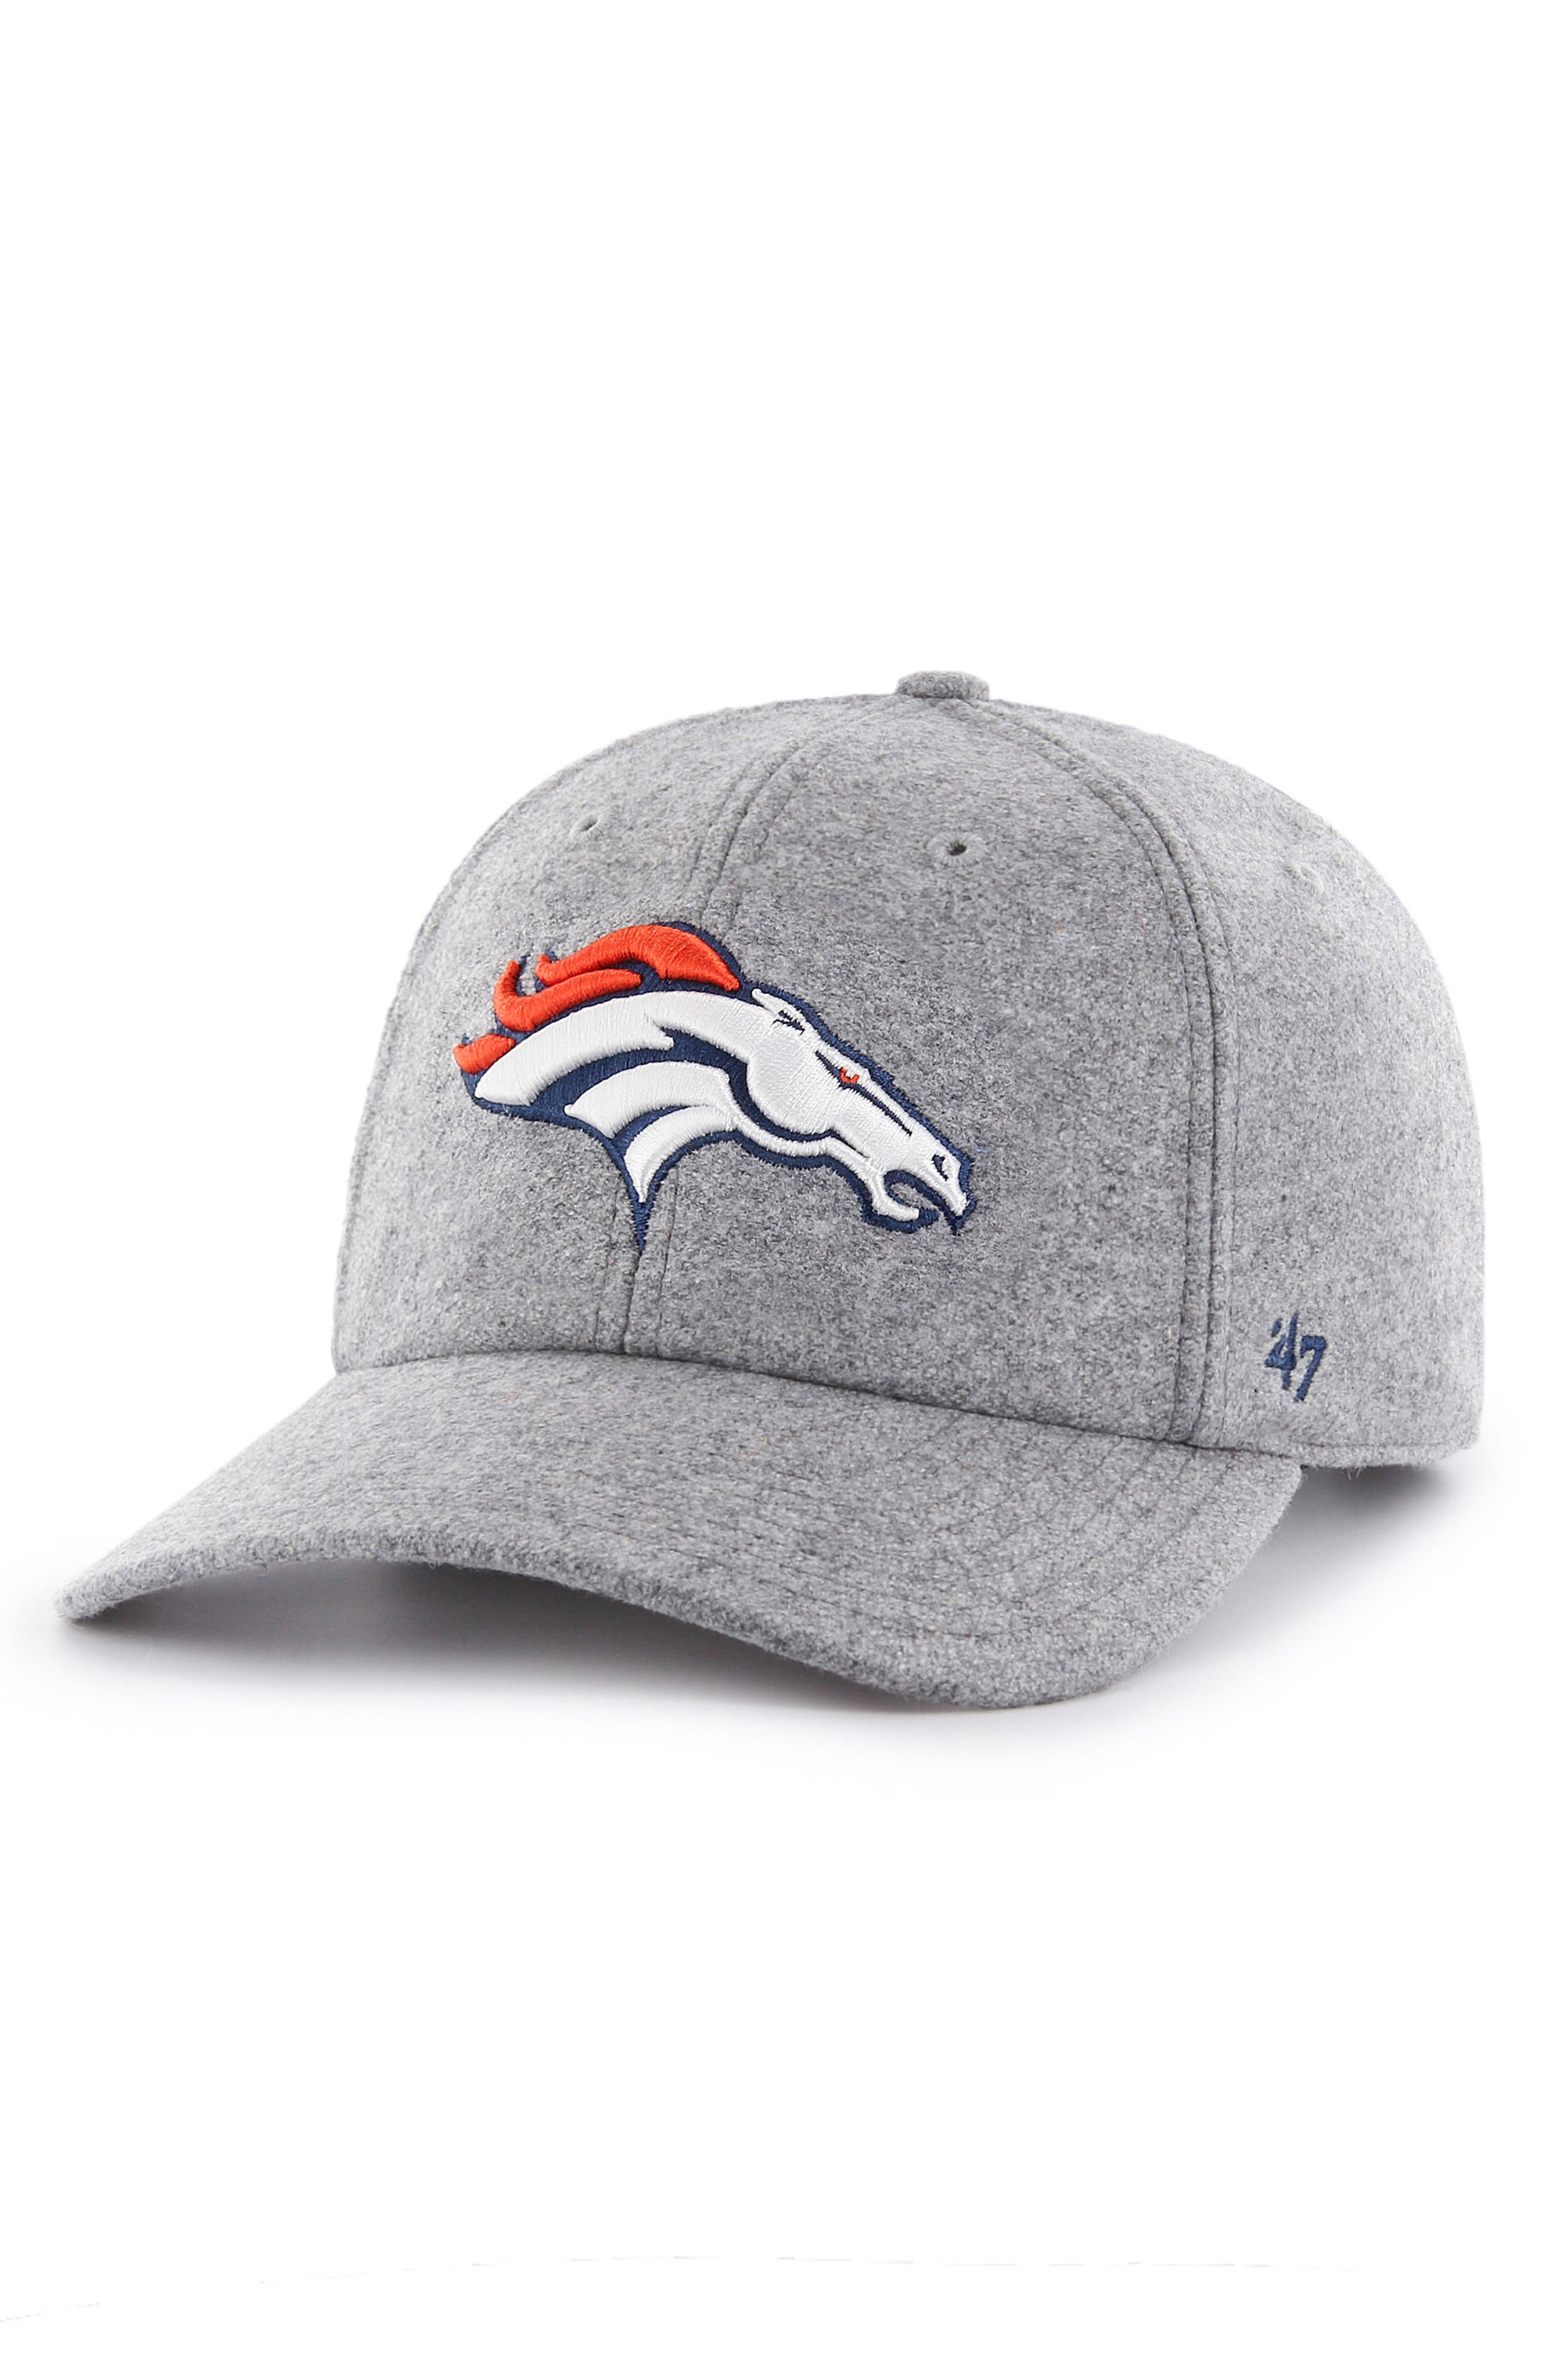 Main Image - 47 Brand NFL Clean-Up Ball Cap